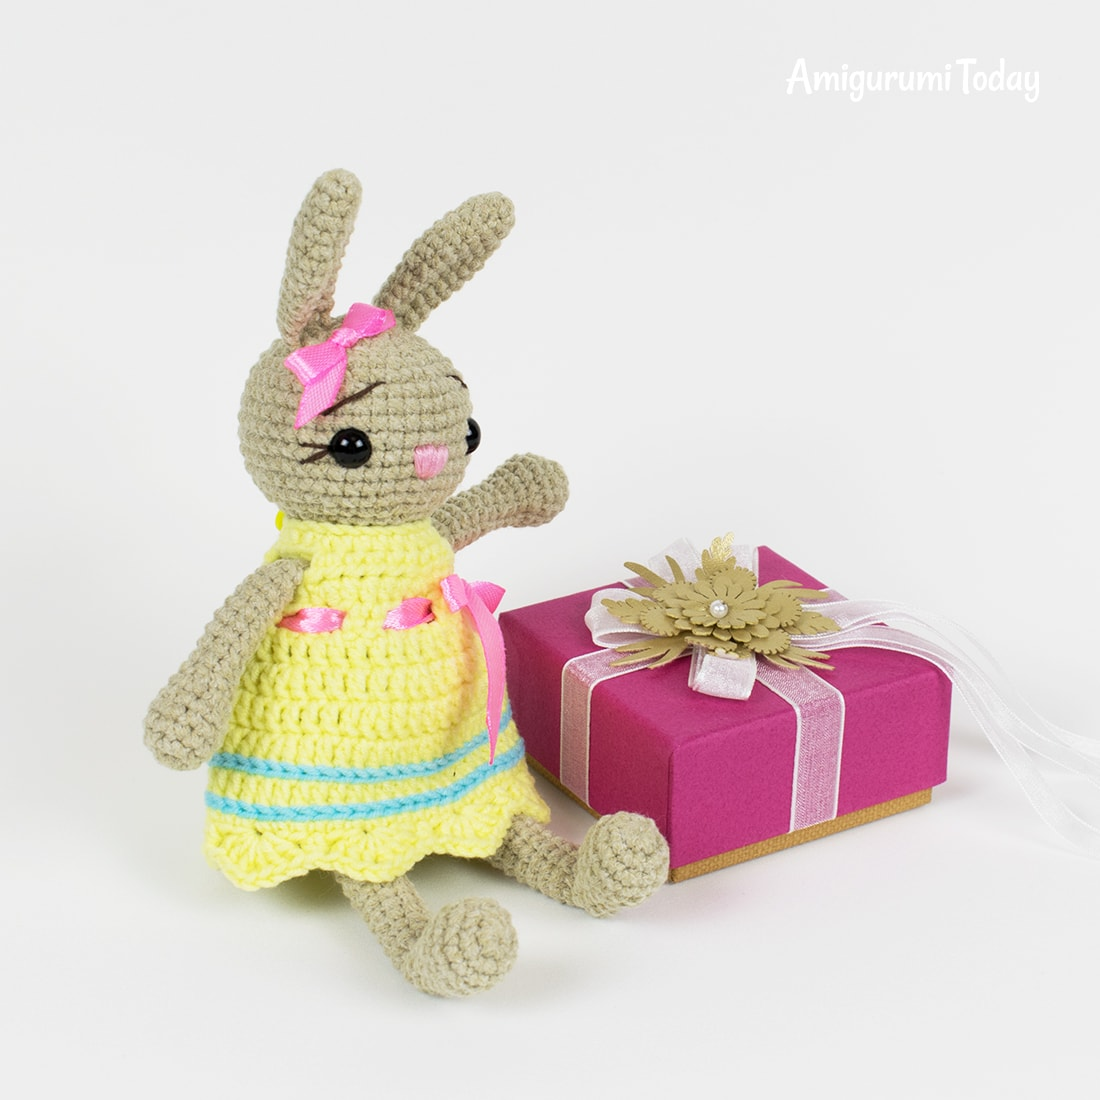 Little crochet bunny pattern by Amigurumi Today